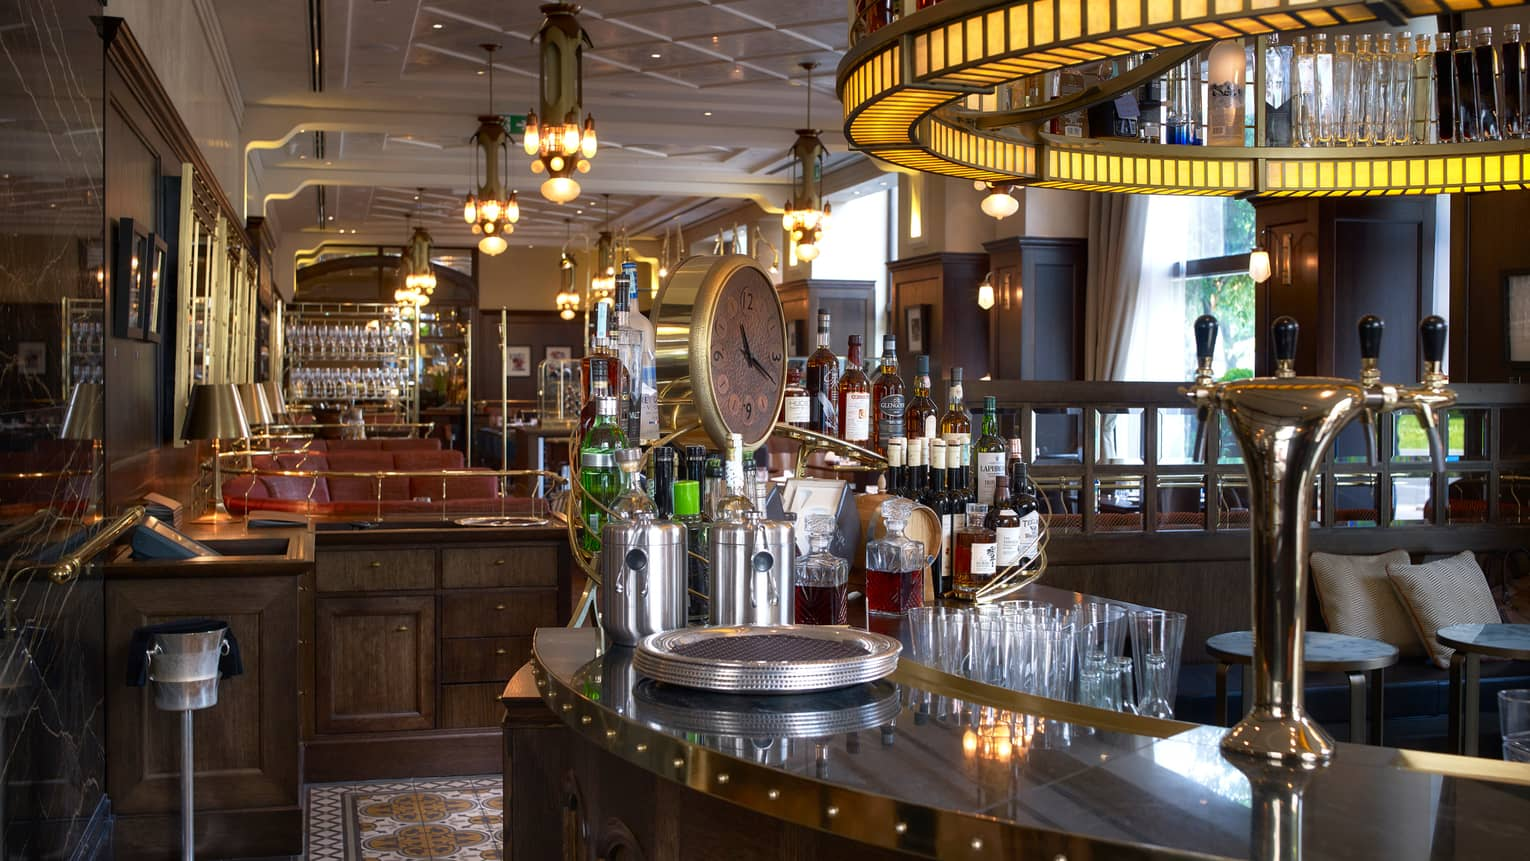 KOLLÁZS Brasserie & Bar curved wood bar with round light overhead, large clock, wine bottles